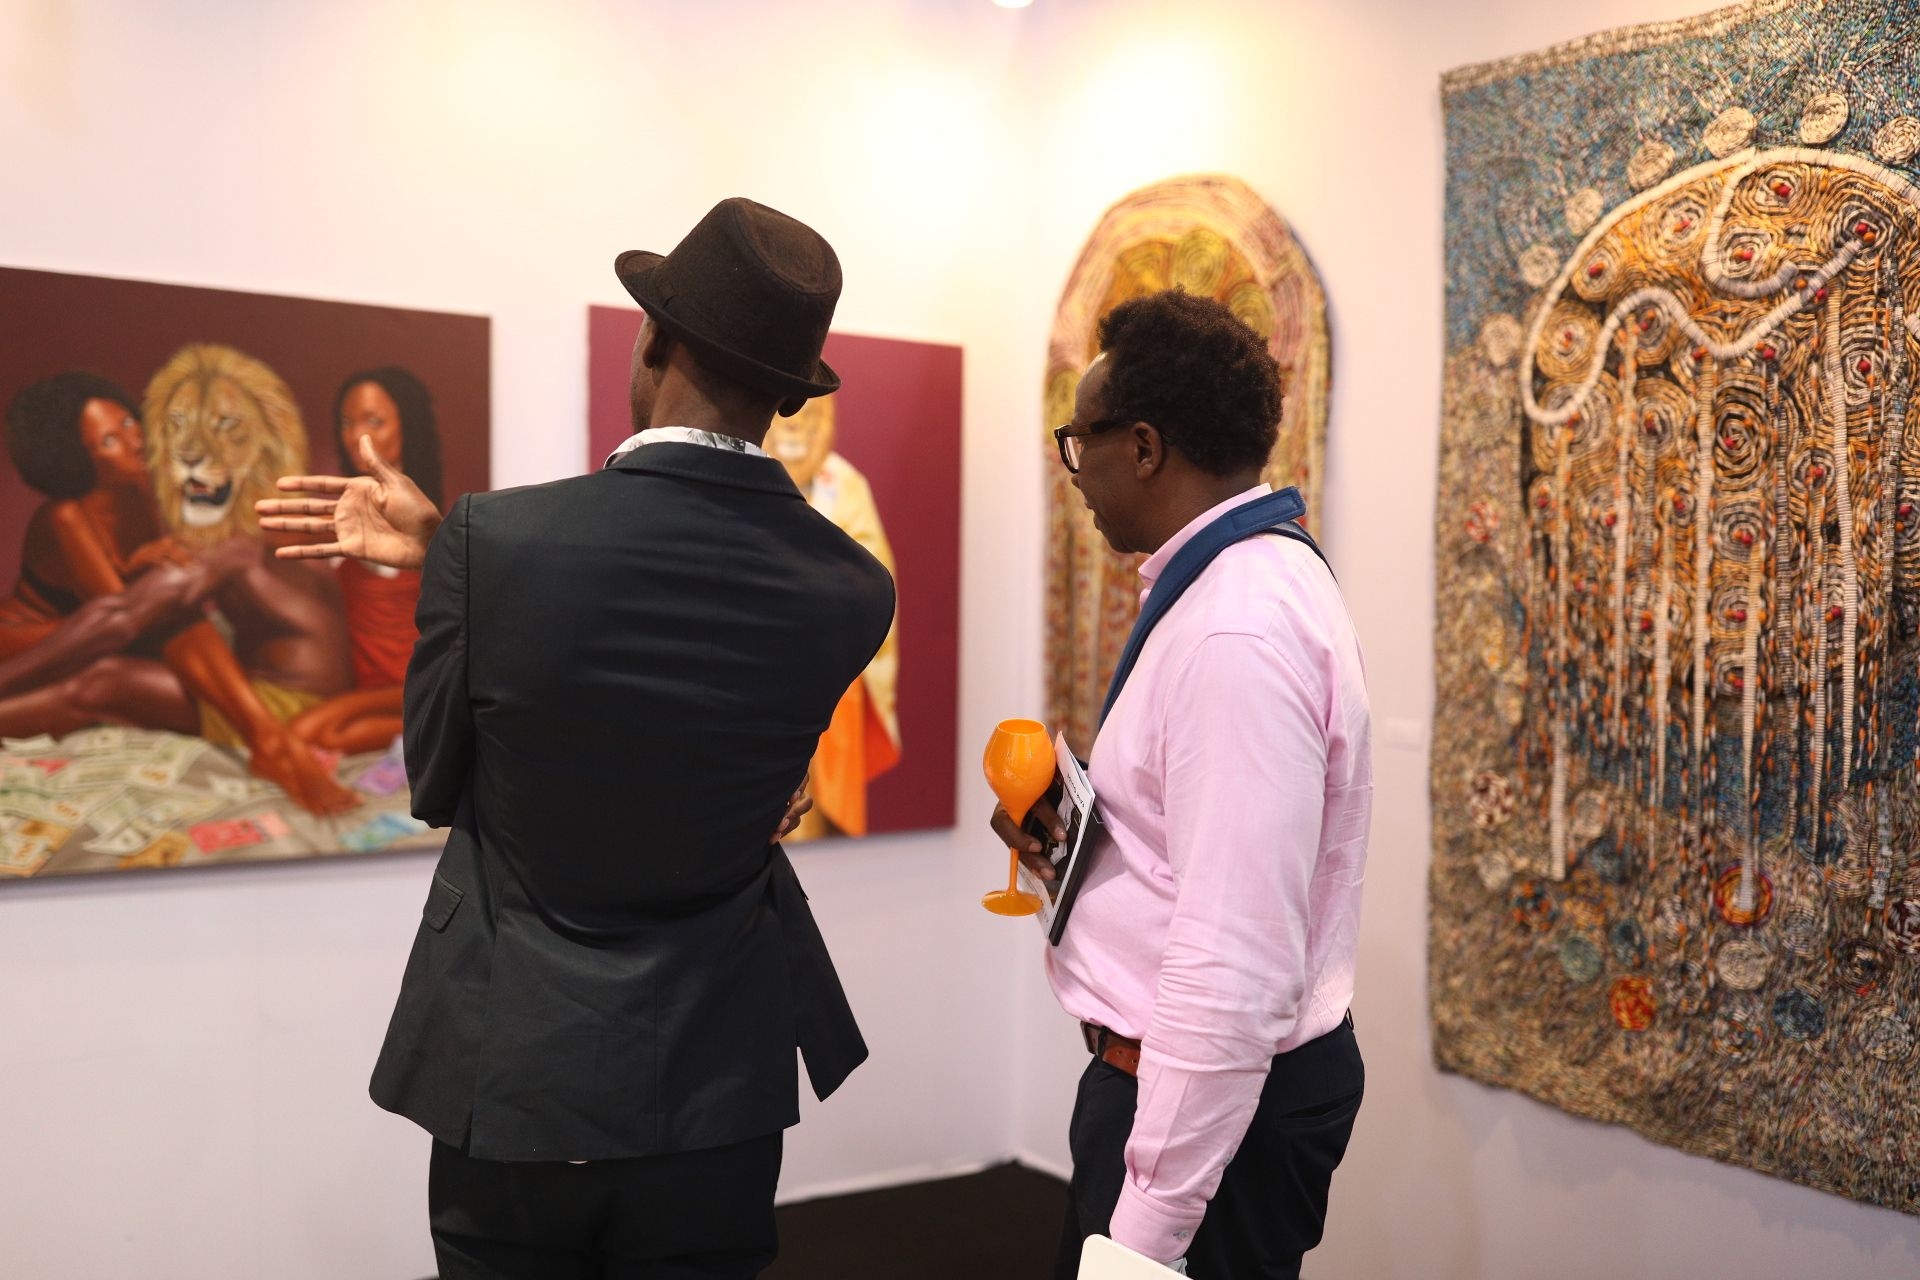 Art X Lagos wants to expand Nigeria's collecting base to support its artists © Art X Lagos